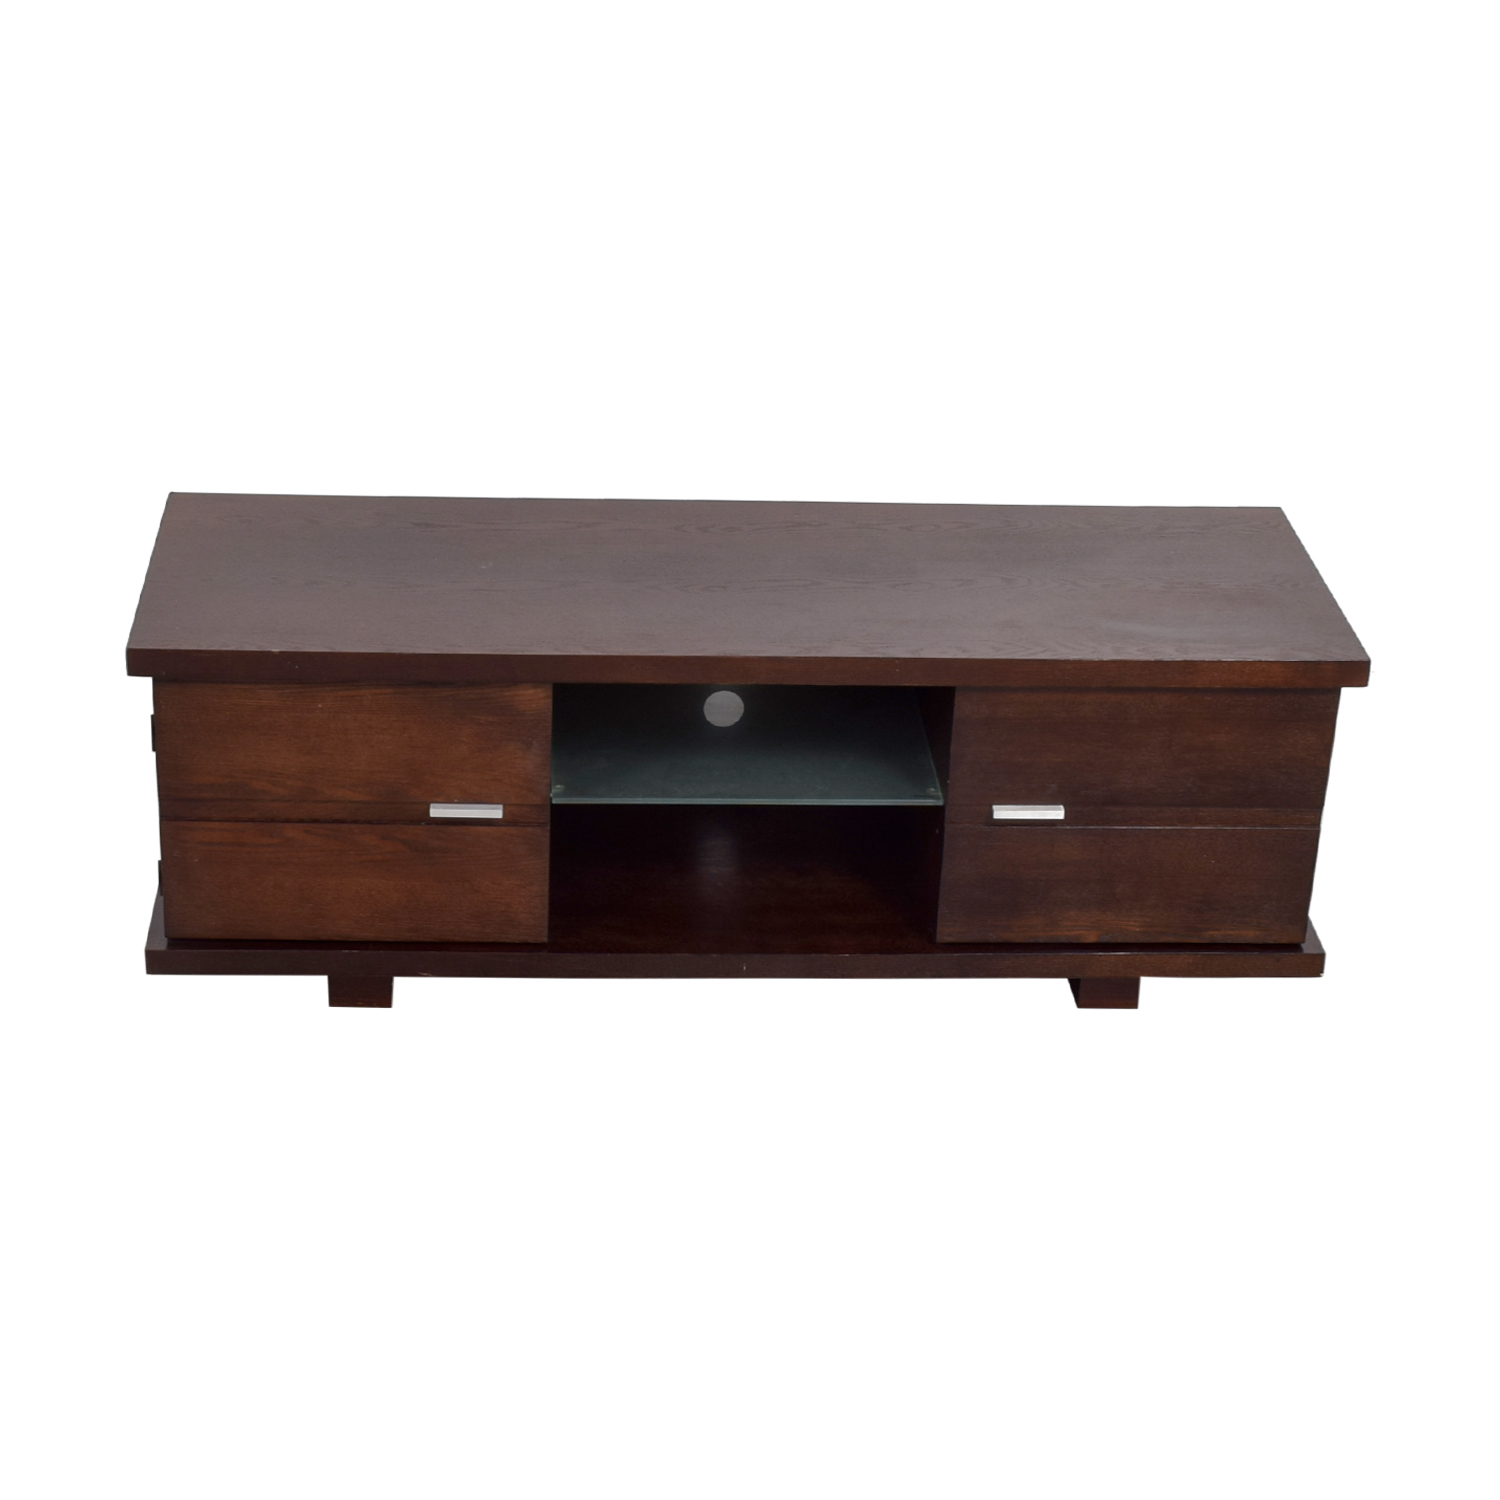 Wood TV Console / Storage